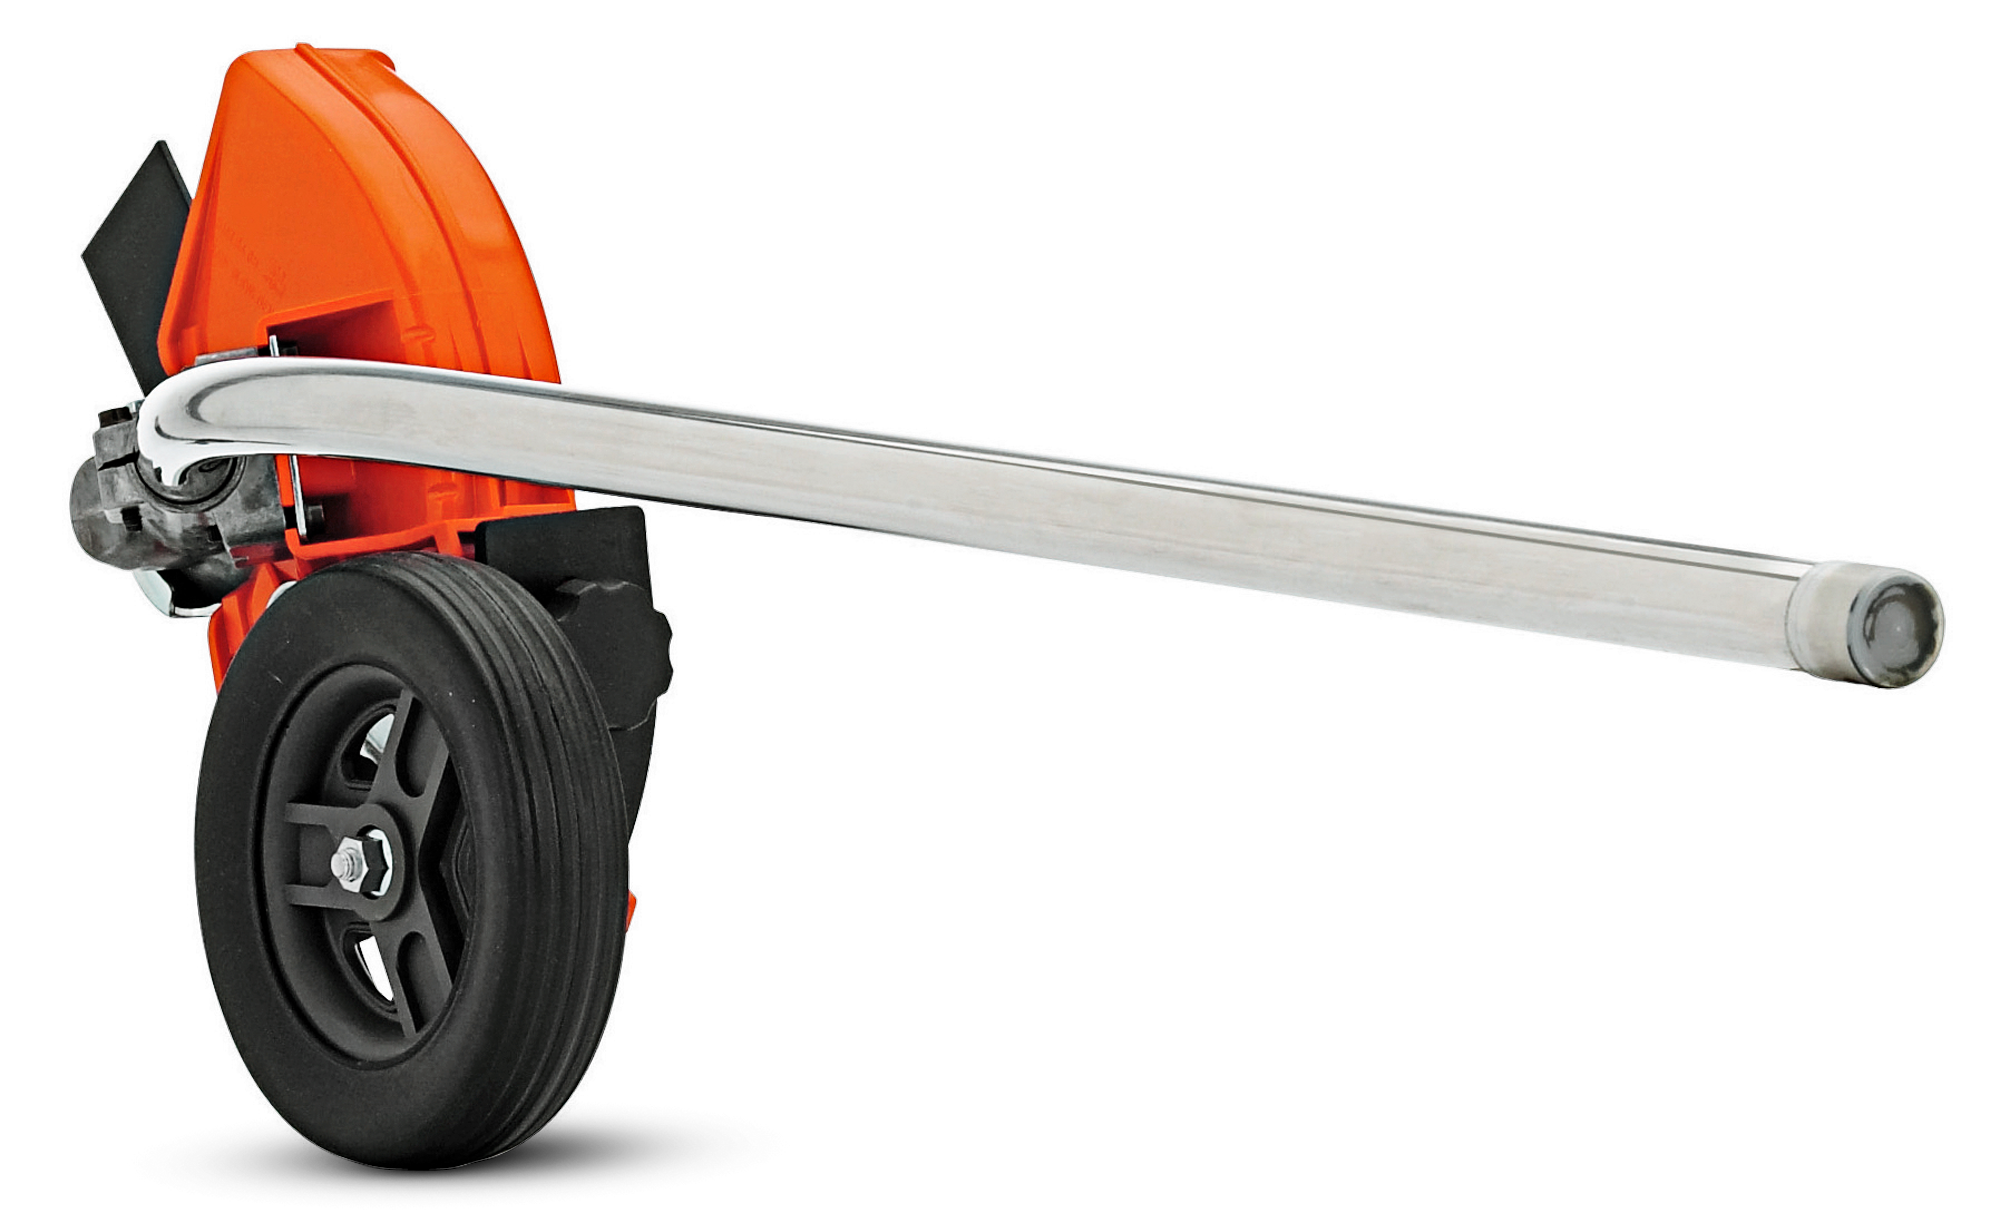 Image for 300EA Edger Attachment                                                                                                           from HusqvarnaB2C